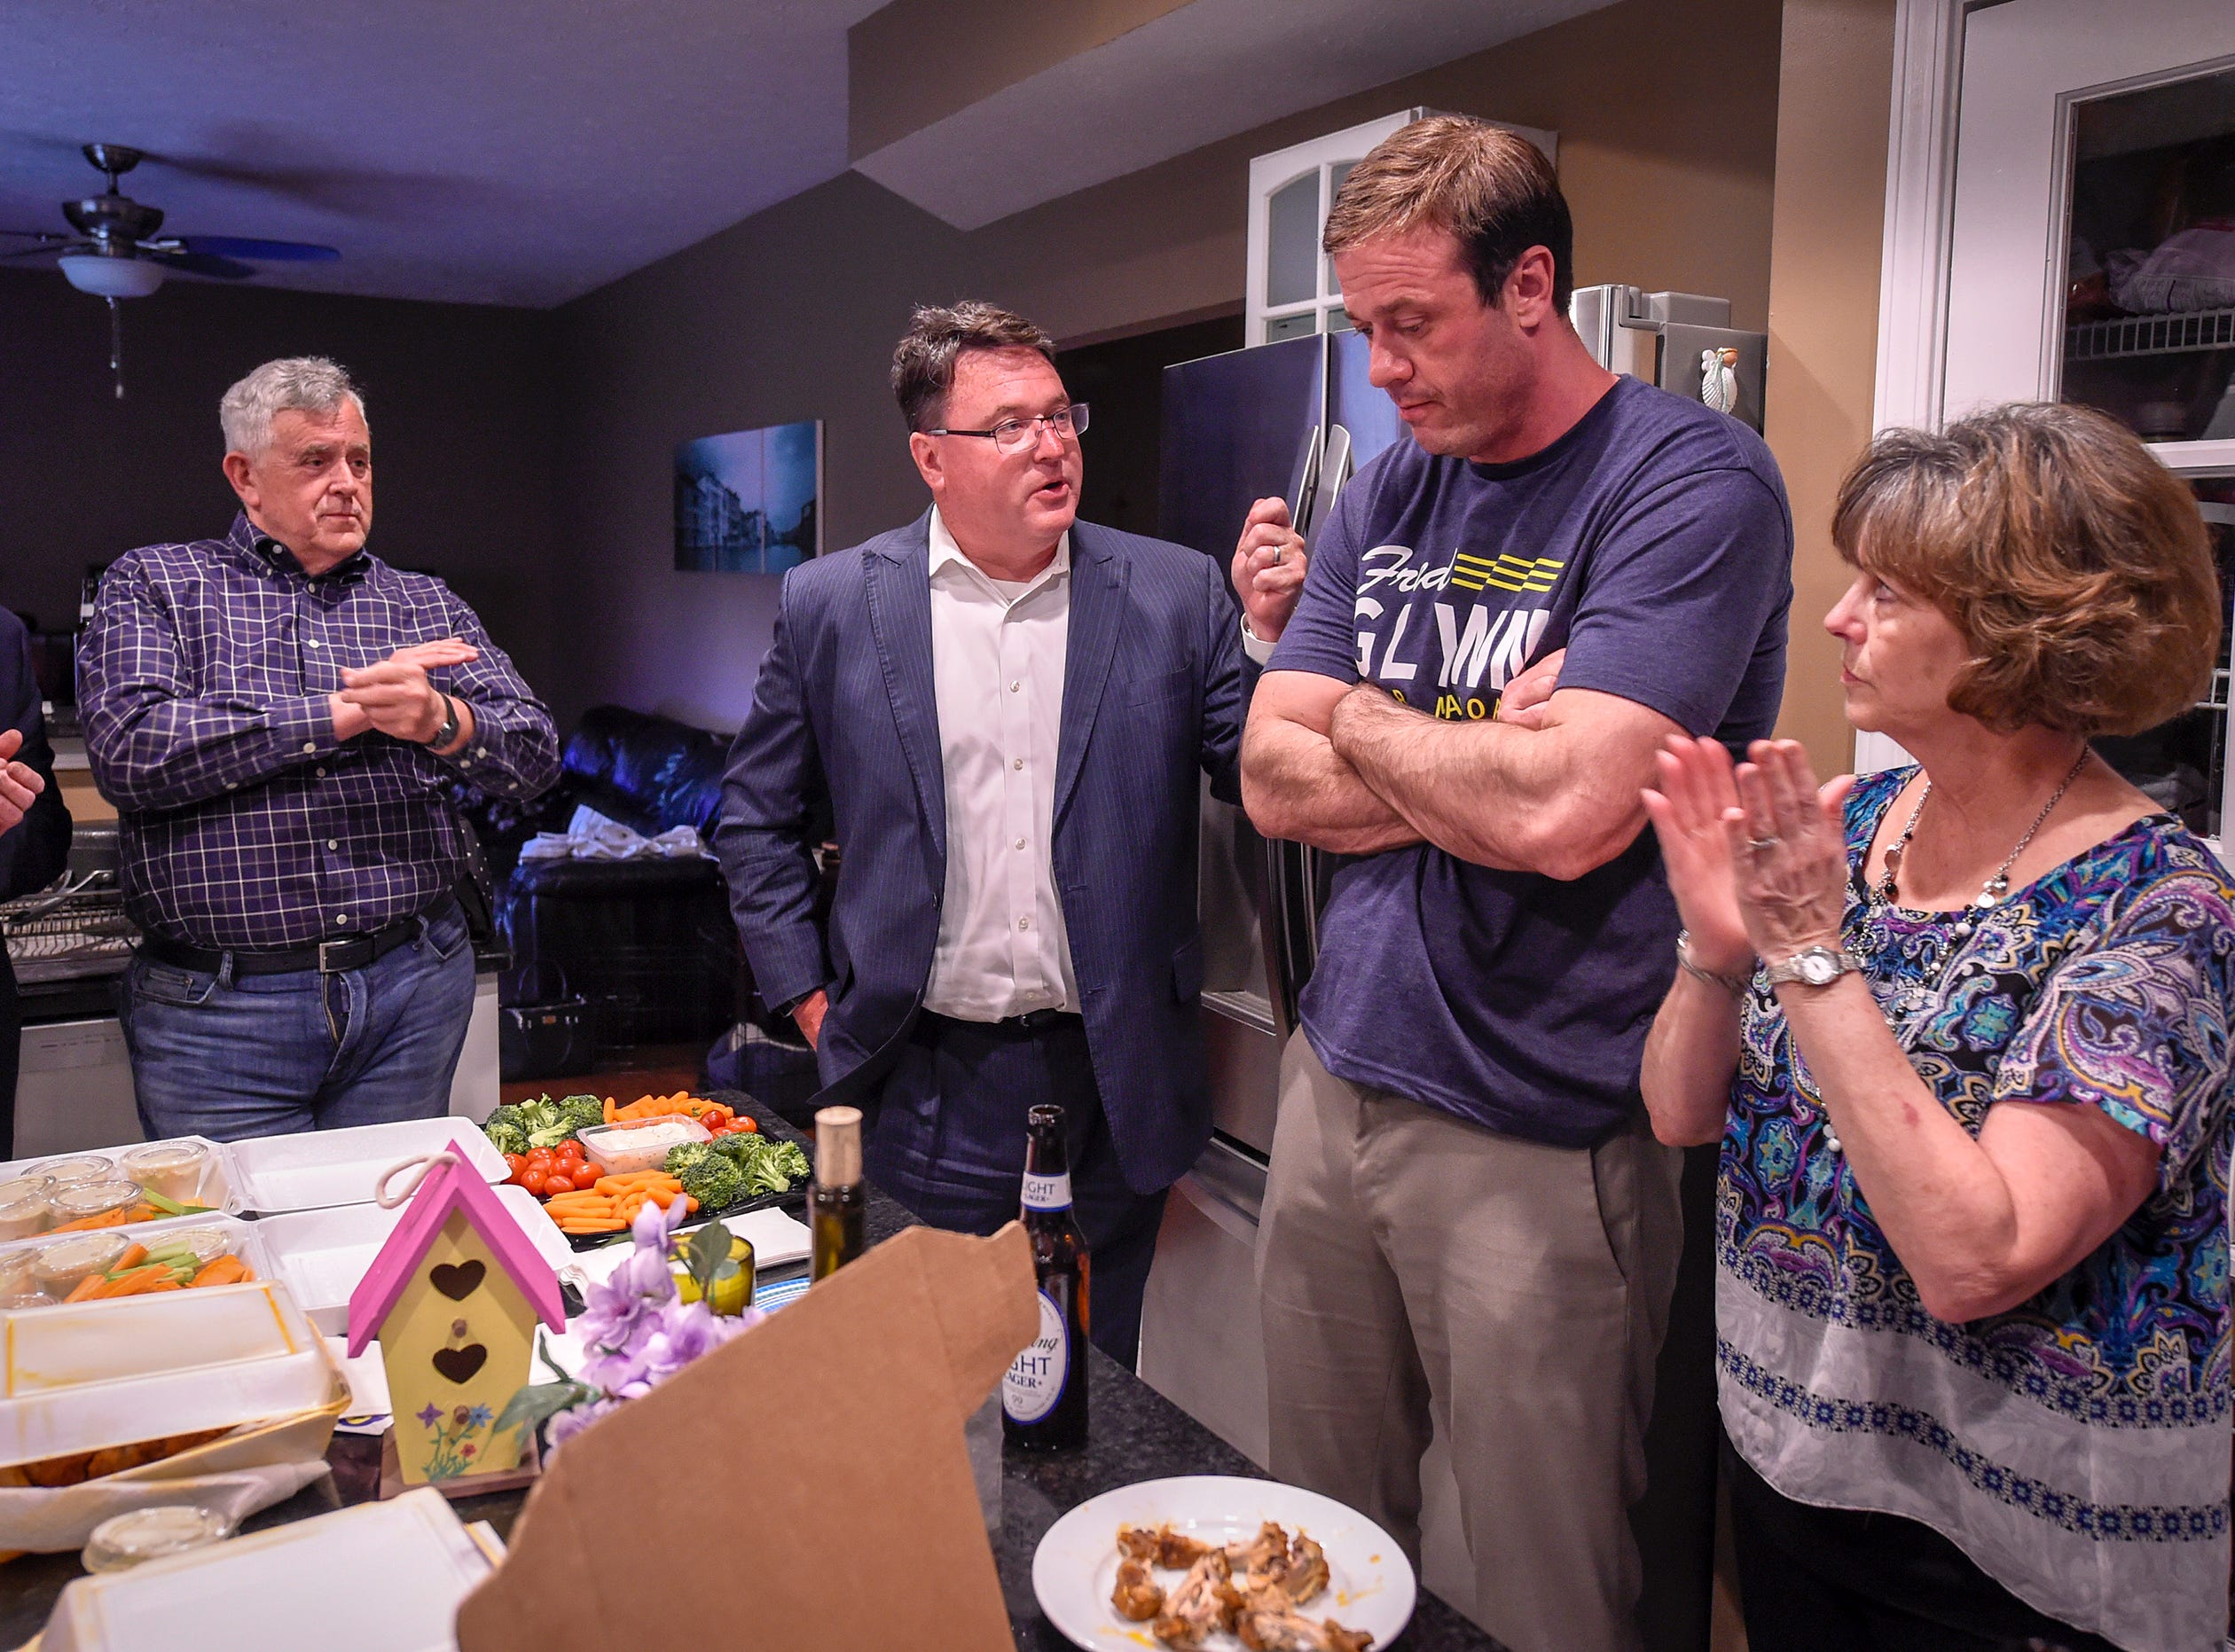 Former congressman Todd Rokita reflects on the campaign as Fred Glynn reacts to the final results of the election while in his kitchen. Family, friends and supporters gathered at the home of the Carmel mayoral candidate as election results were publicized, Tuesday, May 7, 2019. Glynn campaigned for the office in hopes of unseating incumbent Jim Brainard who was seeking his seventh term in the office.